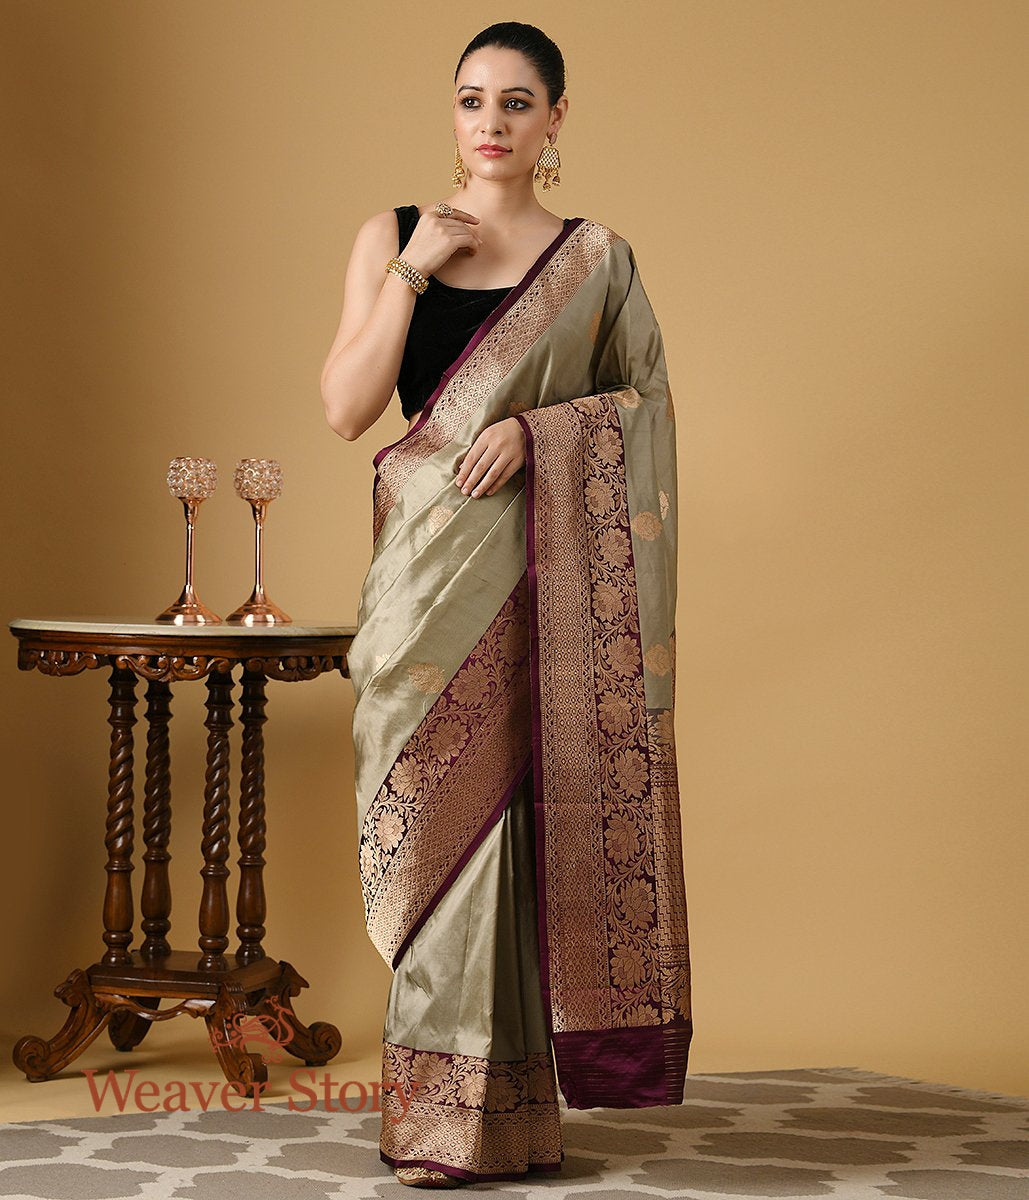 Handwoven Beige and Grey Dual Tone Katan Silk Sareee with Wine Border